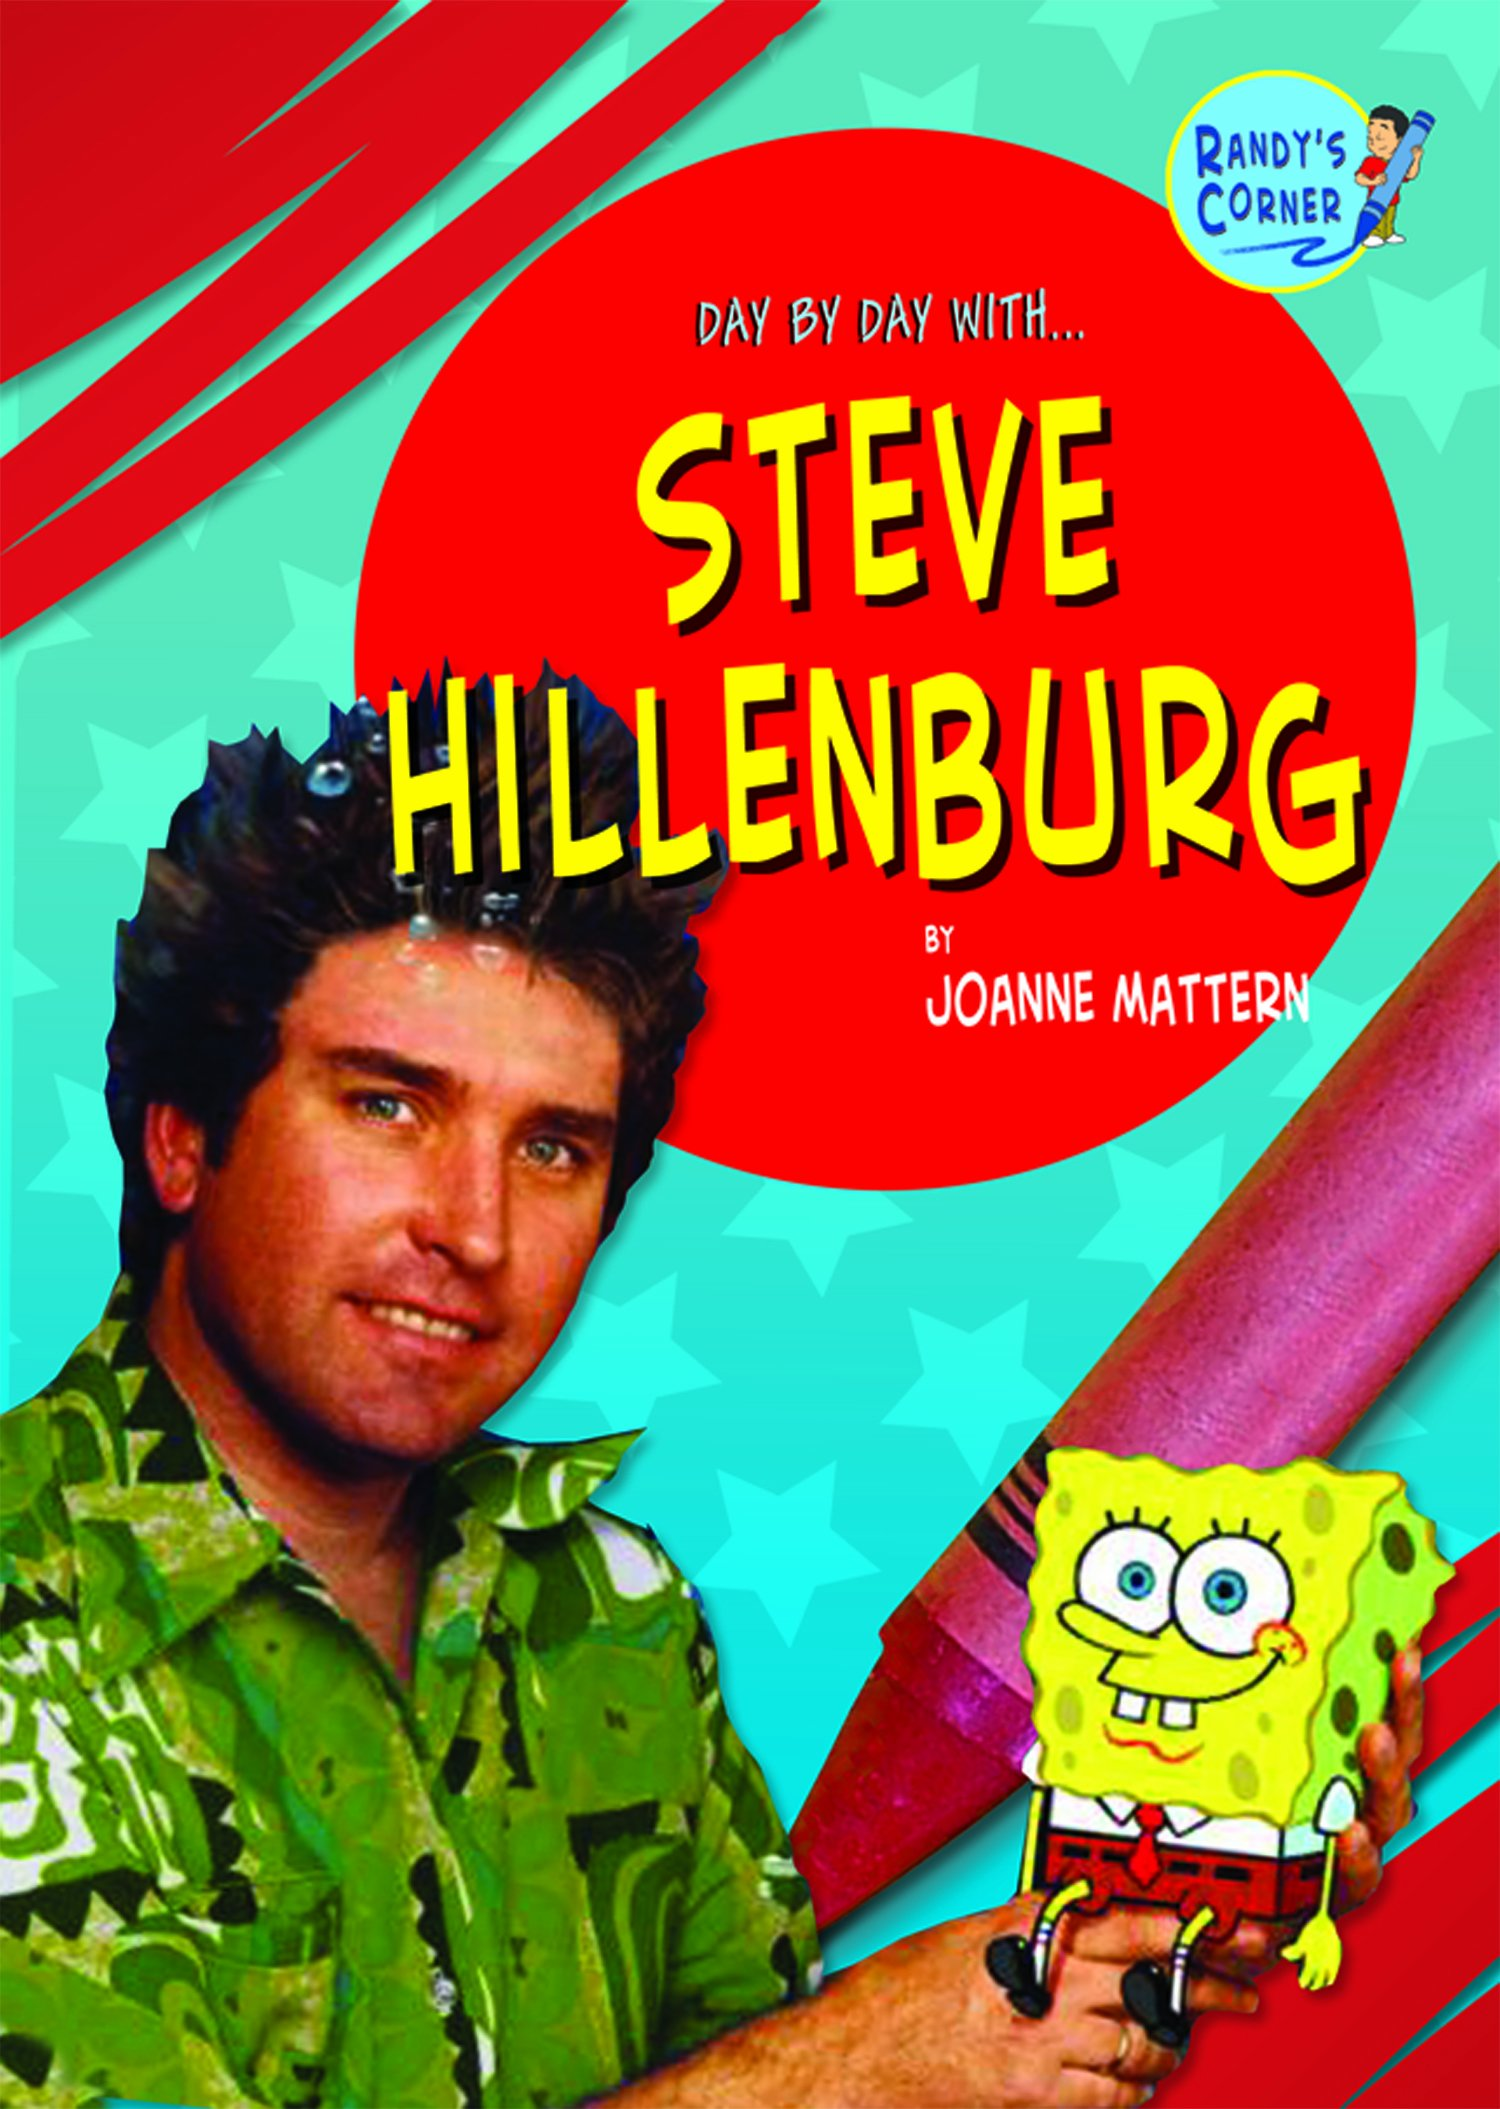 Steve Hillenburg (Randy's Corner: Day by Day with ...)